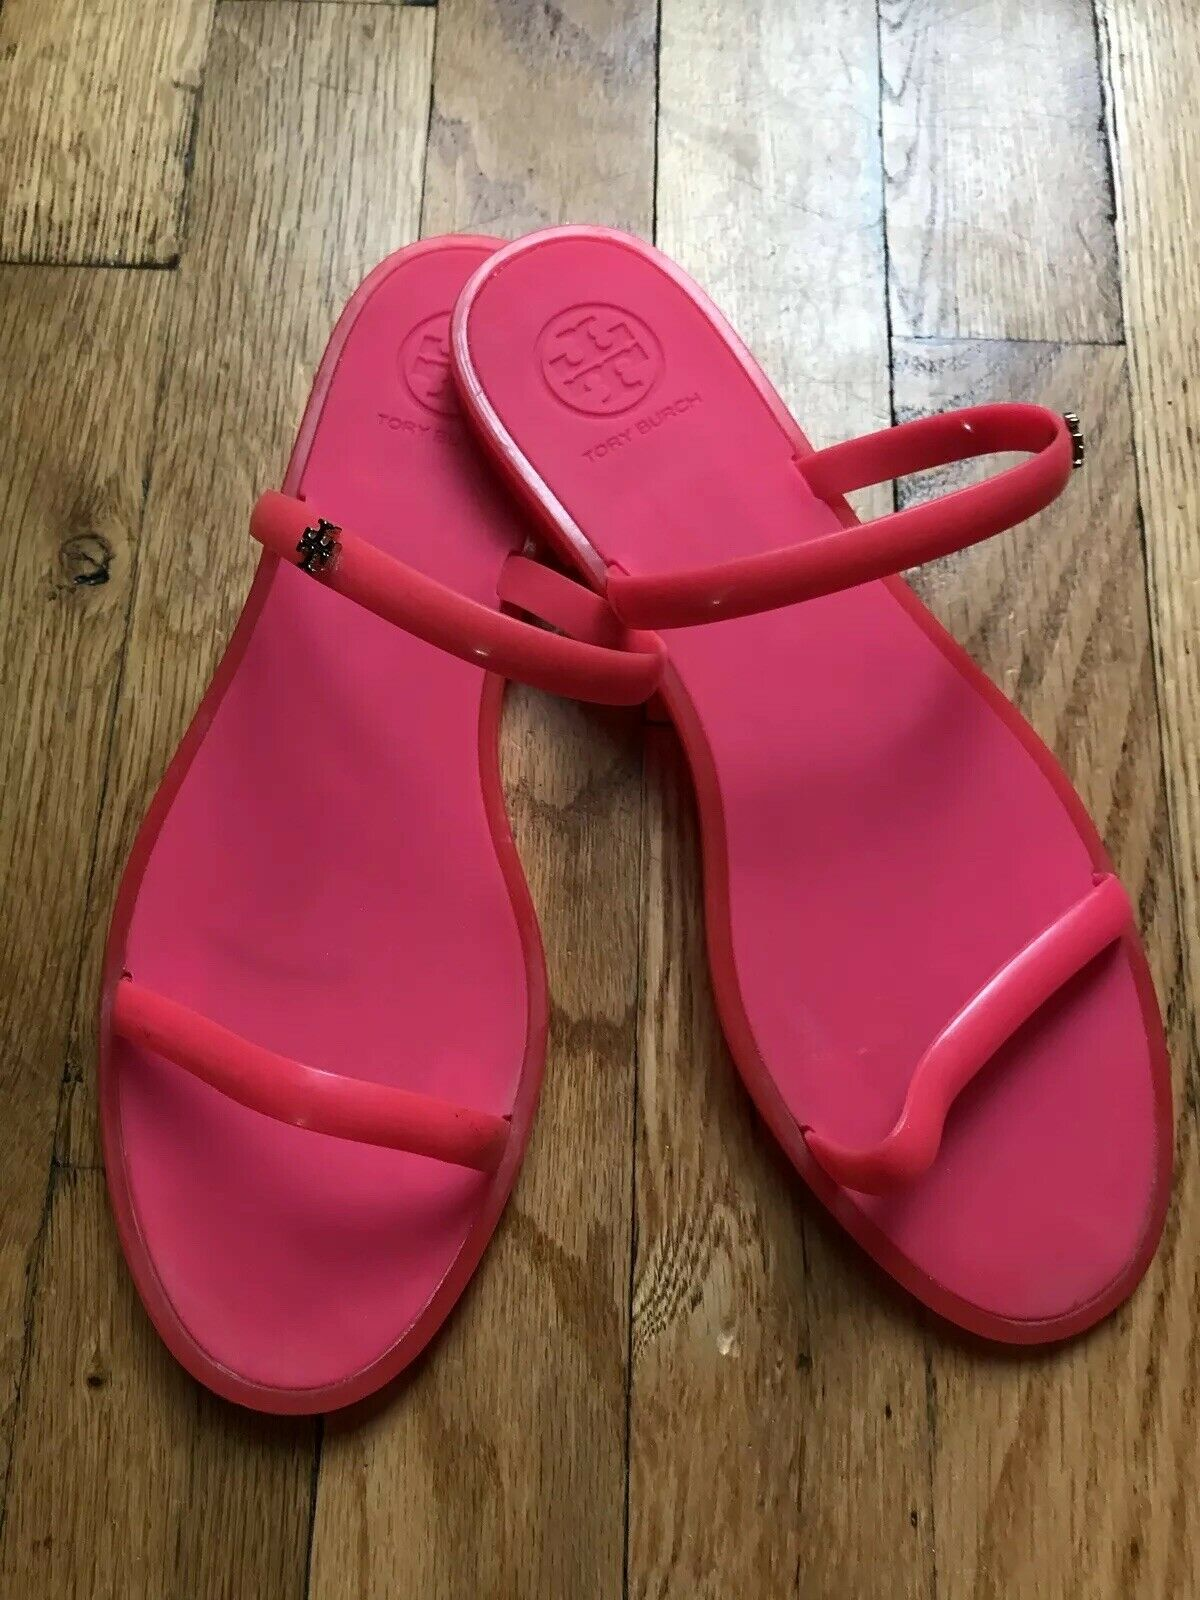 TORY BURCH Hot Pink Jelly Slip On Slippers Size 8